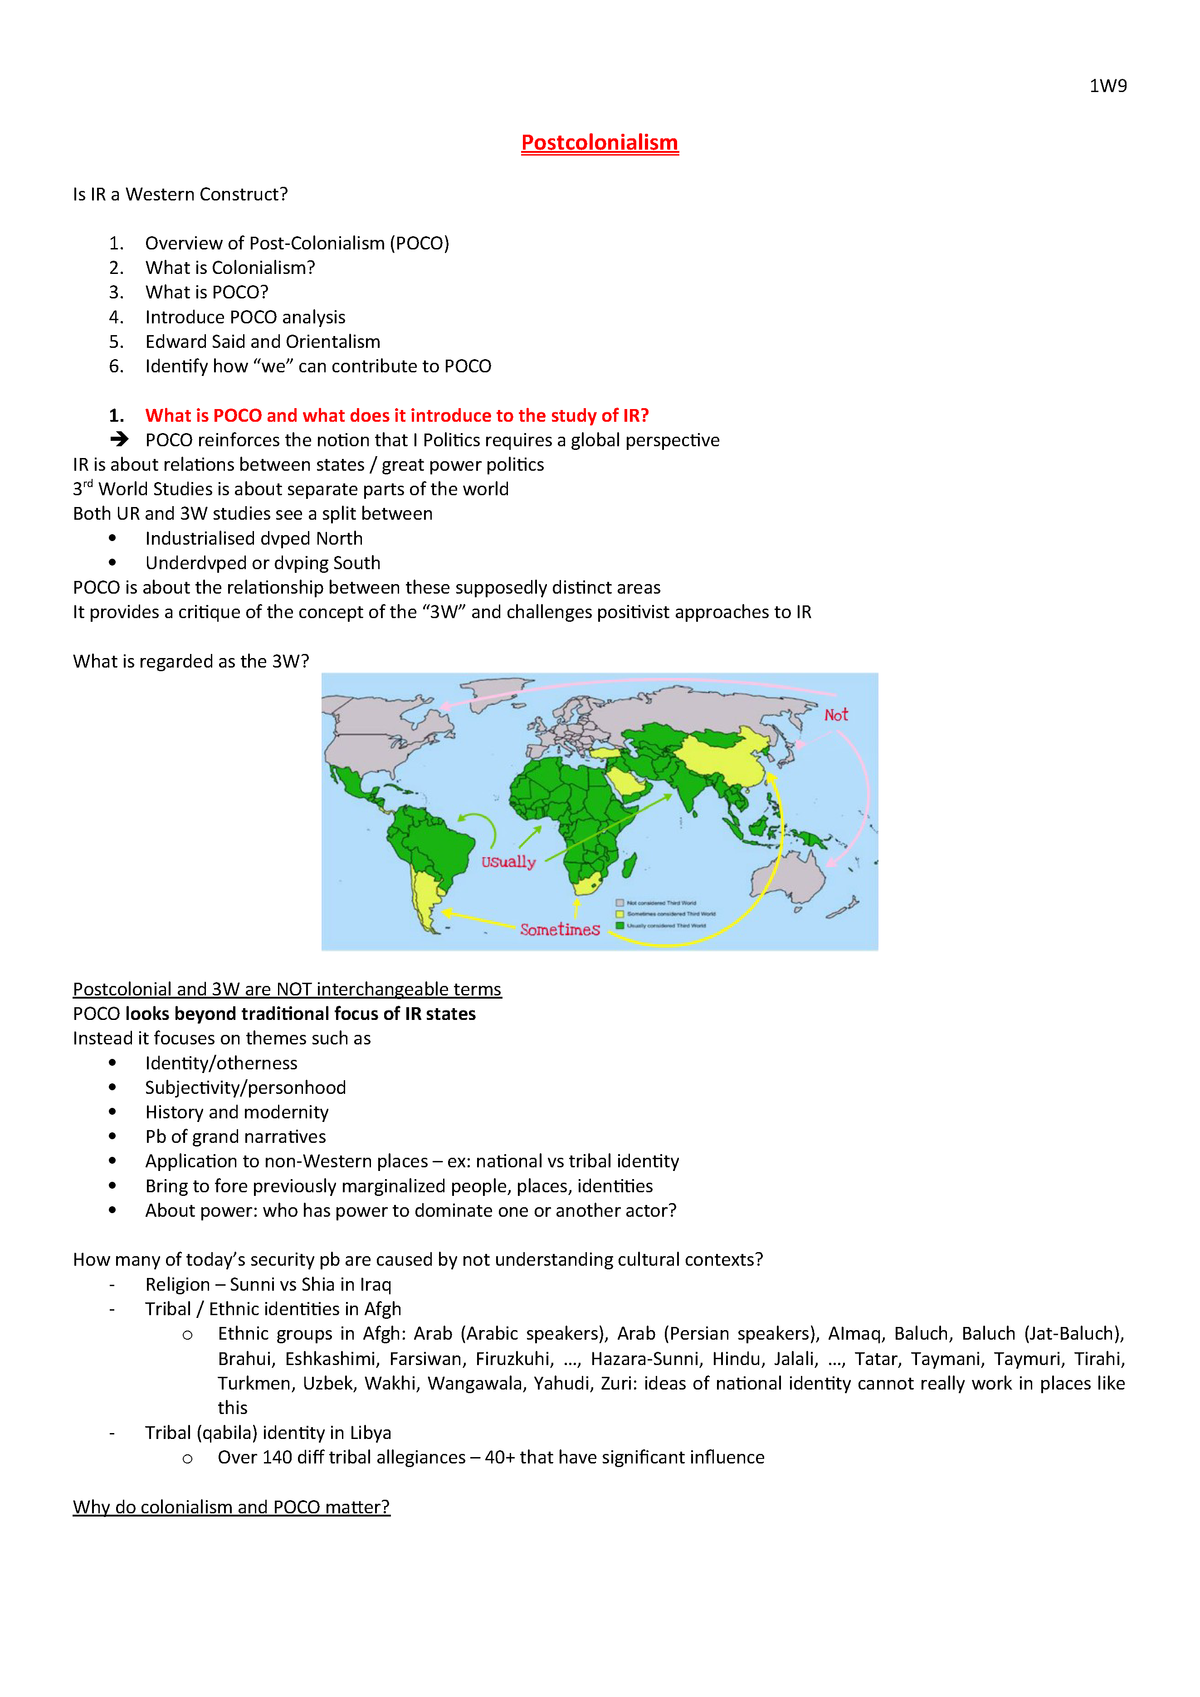 7  Postcolonialism - Very detailed summary  Notes taken from